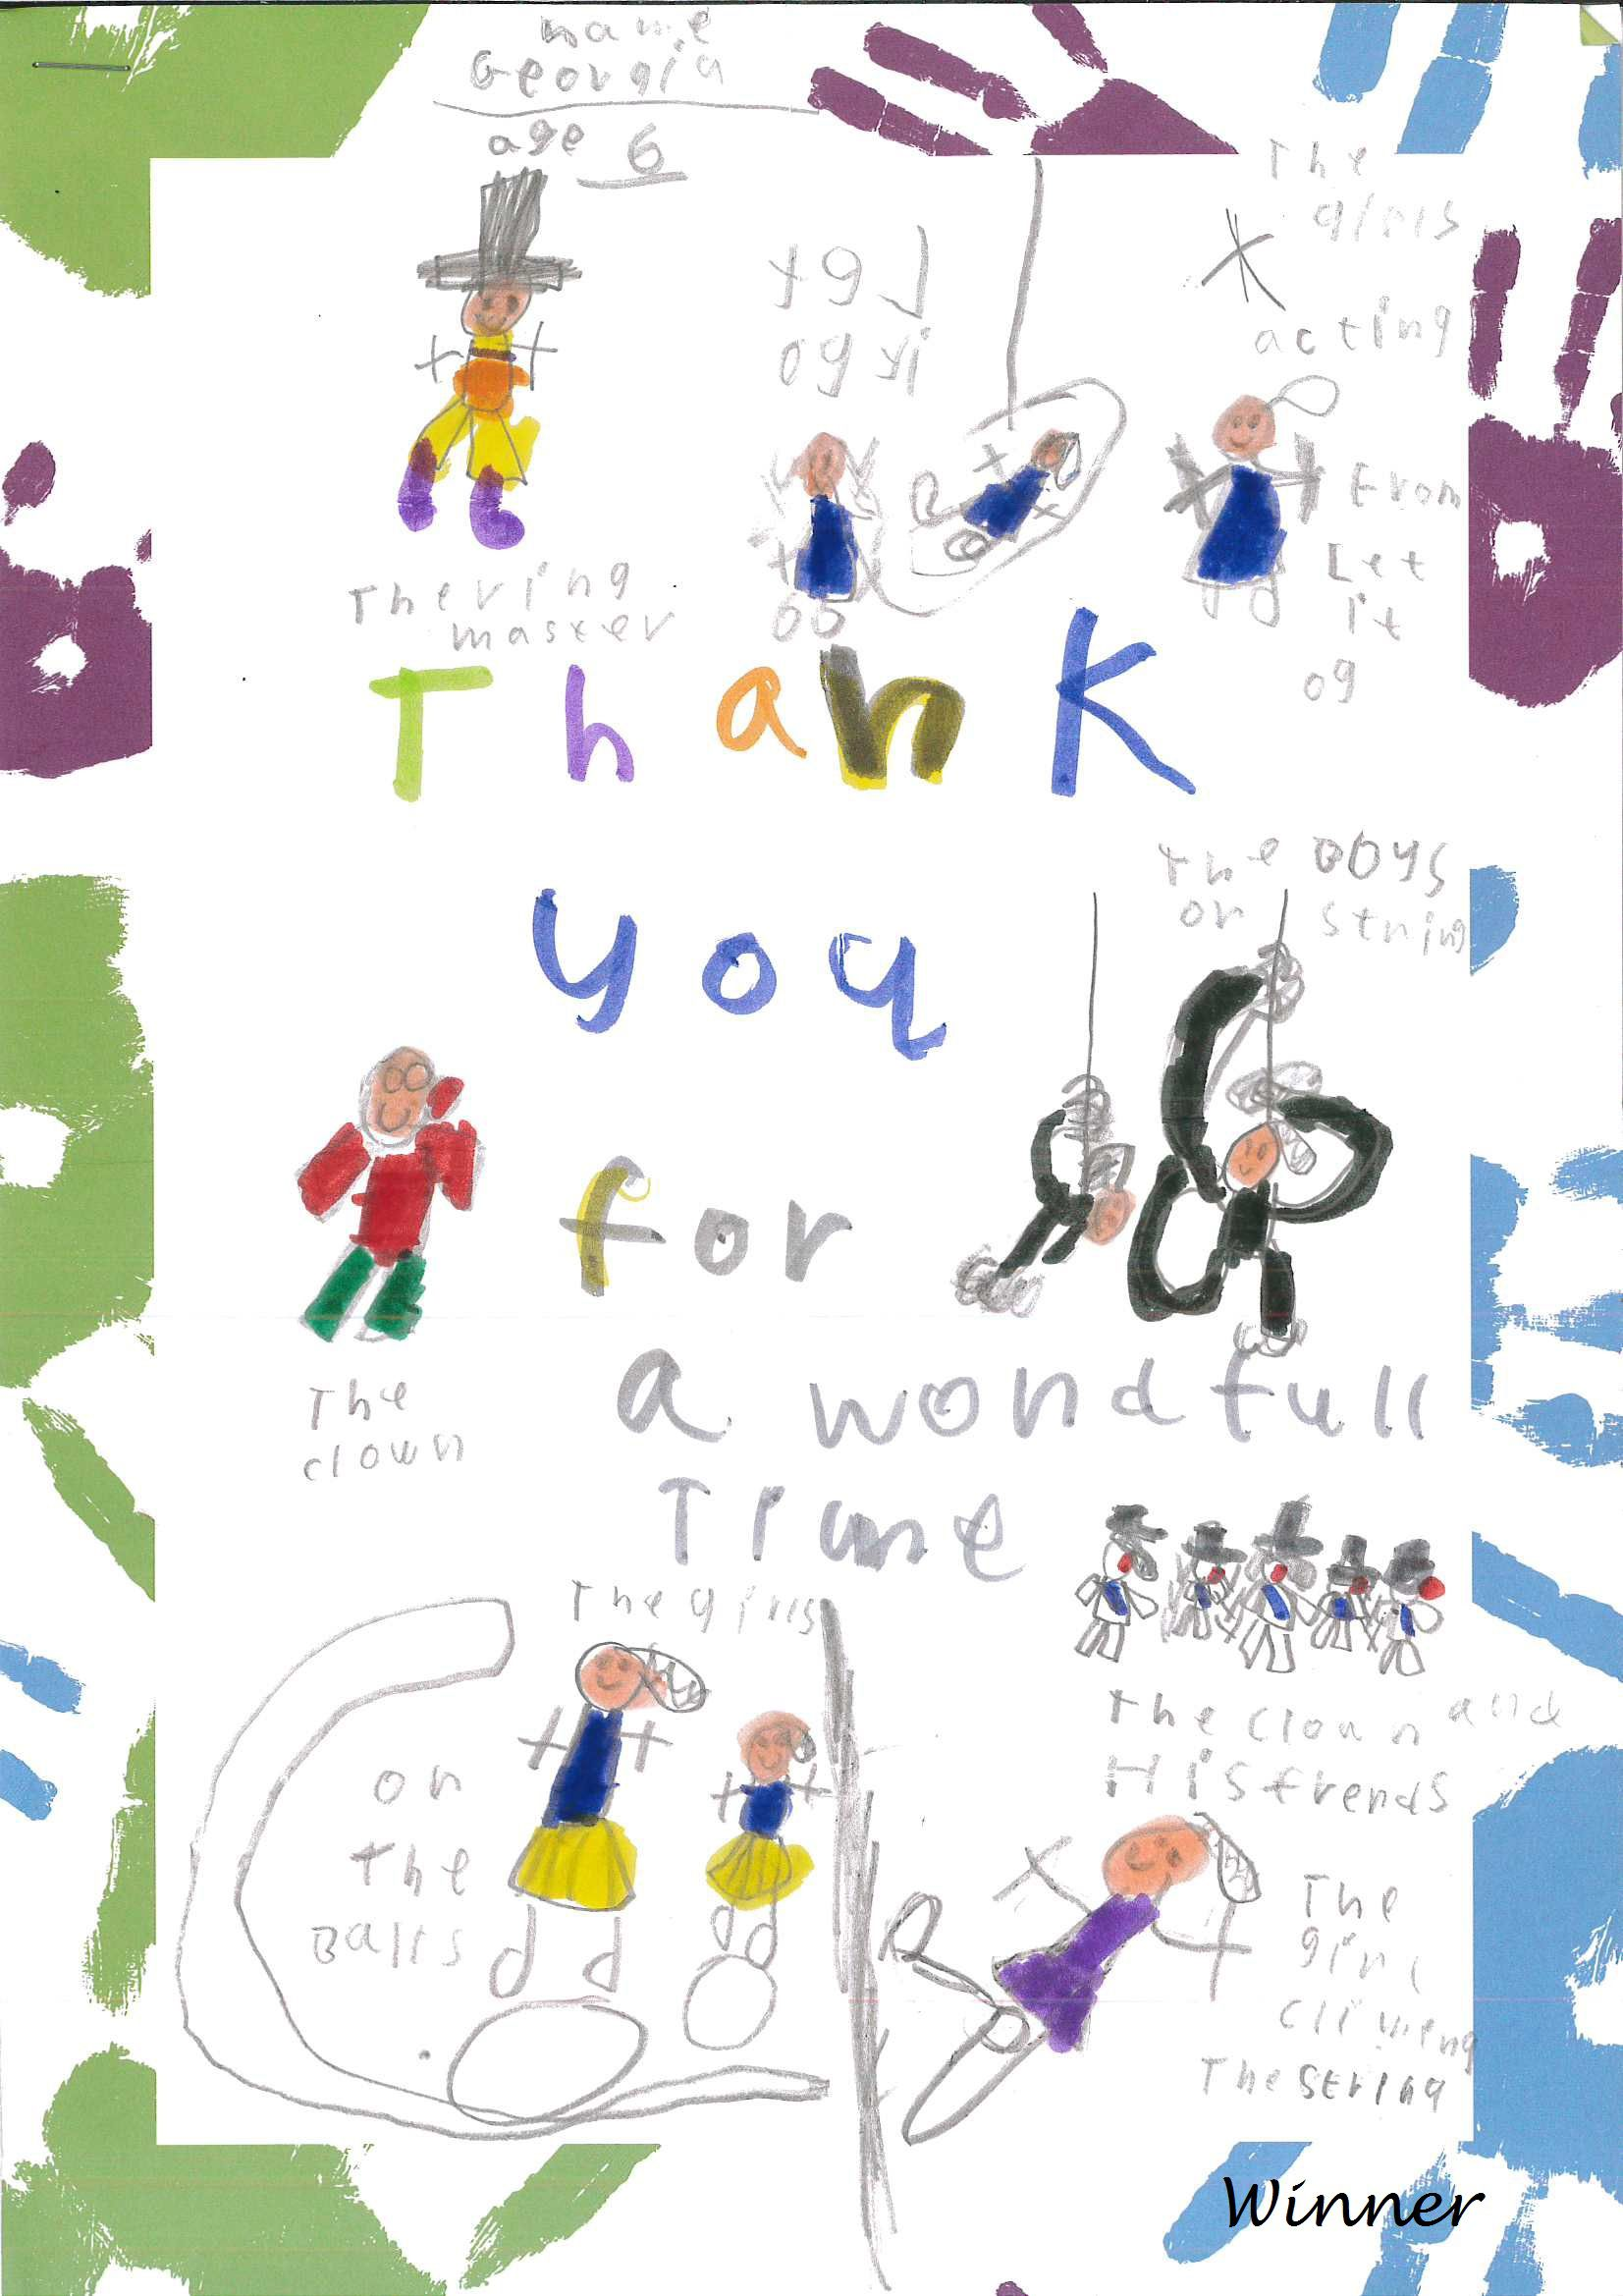 A thank you letter from a little girl to Circus Starr